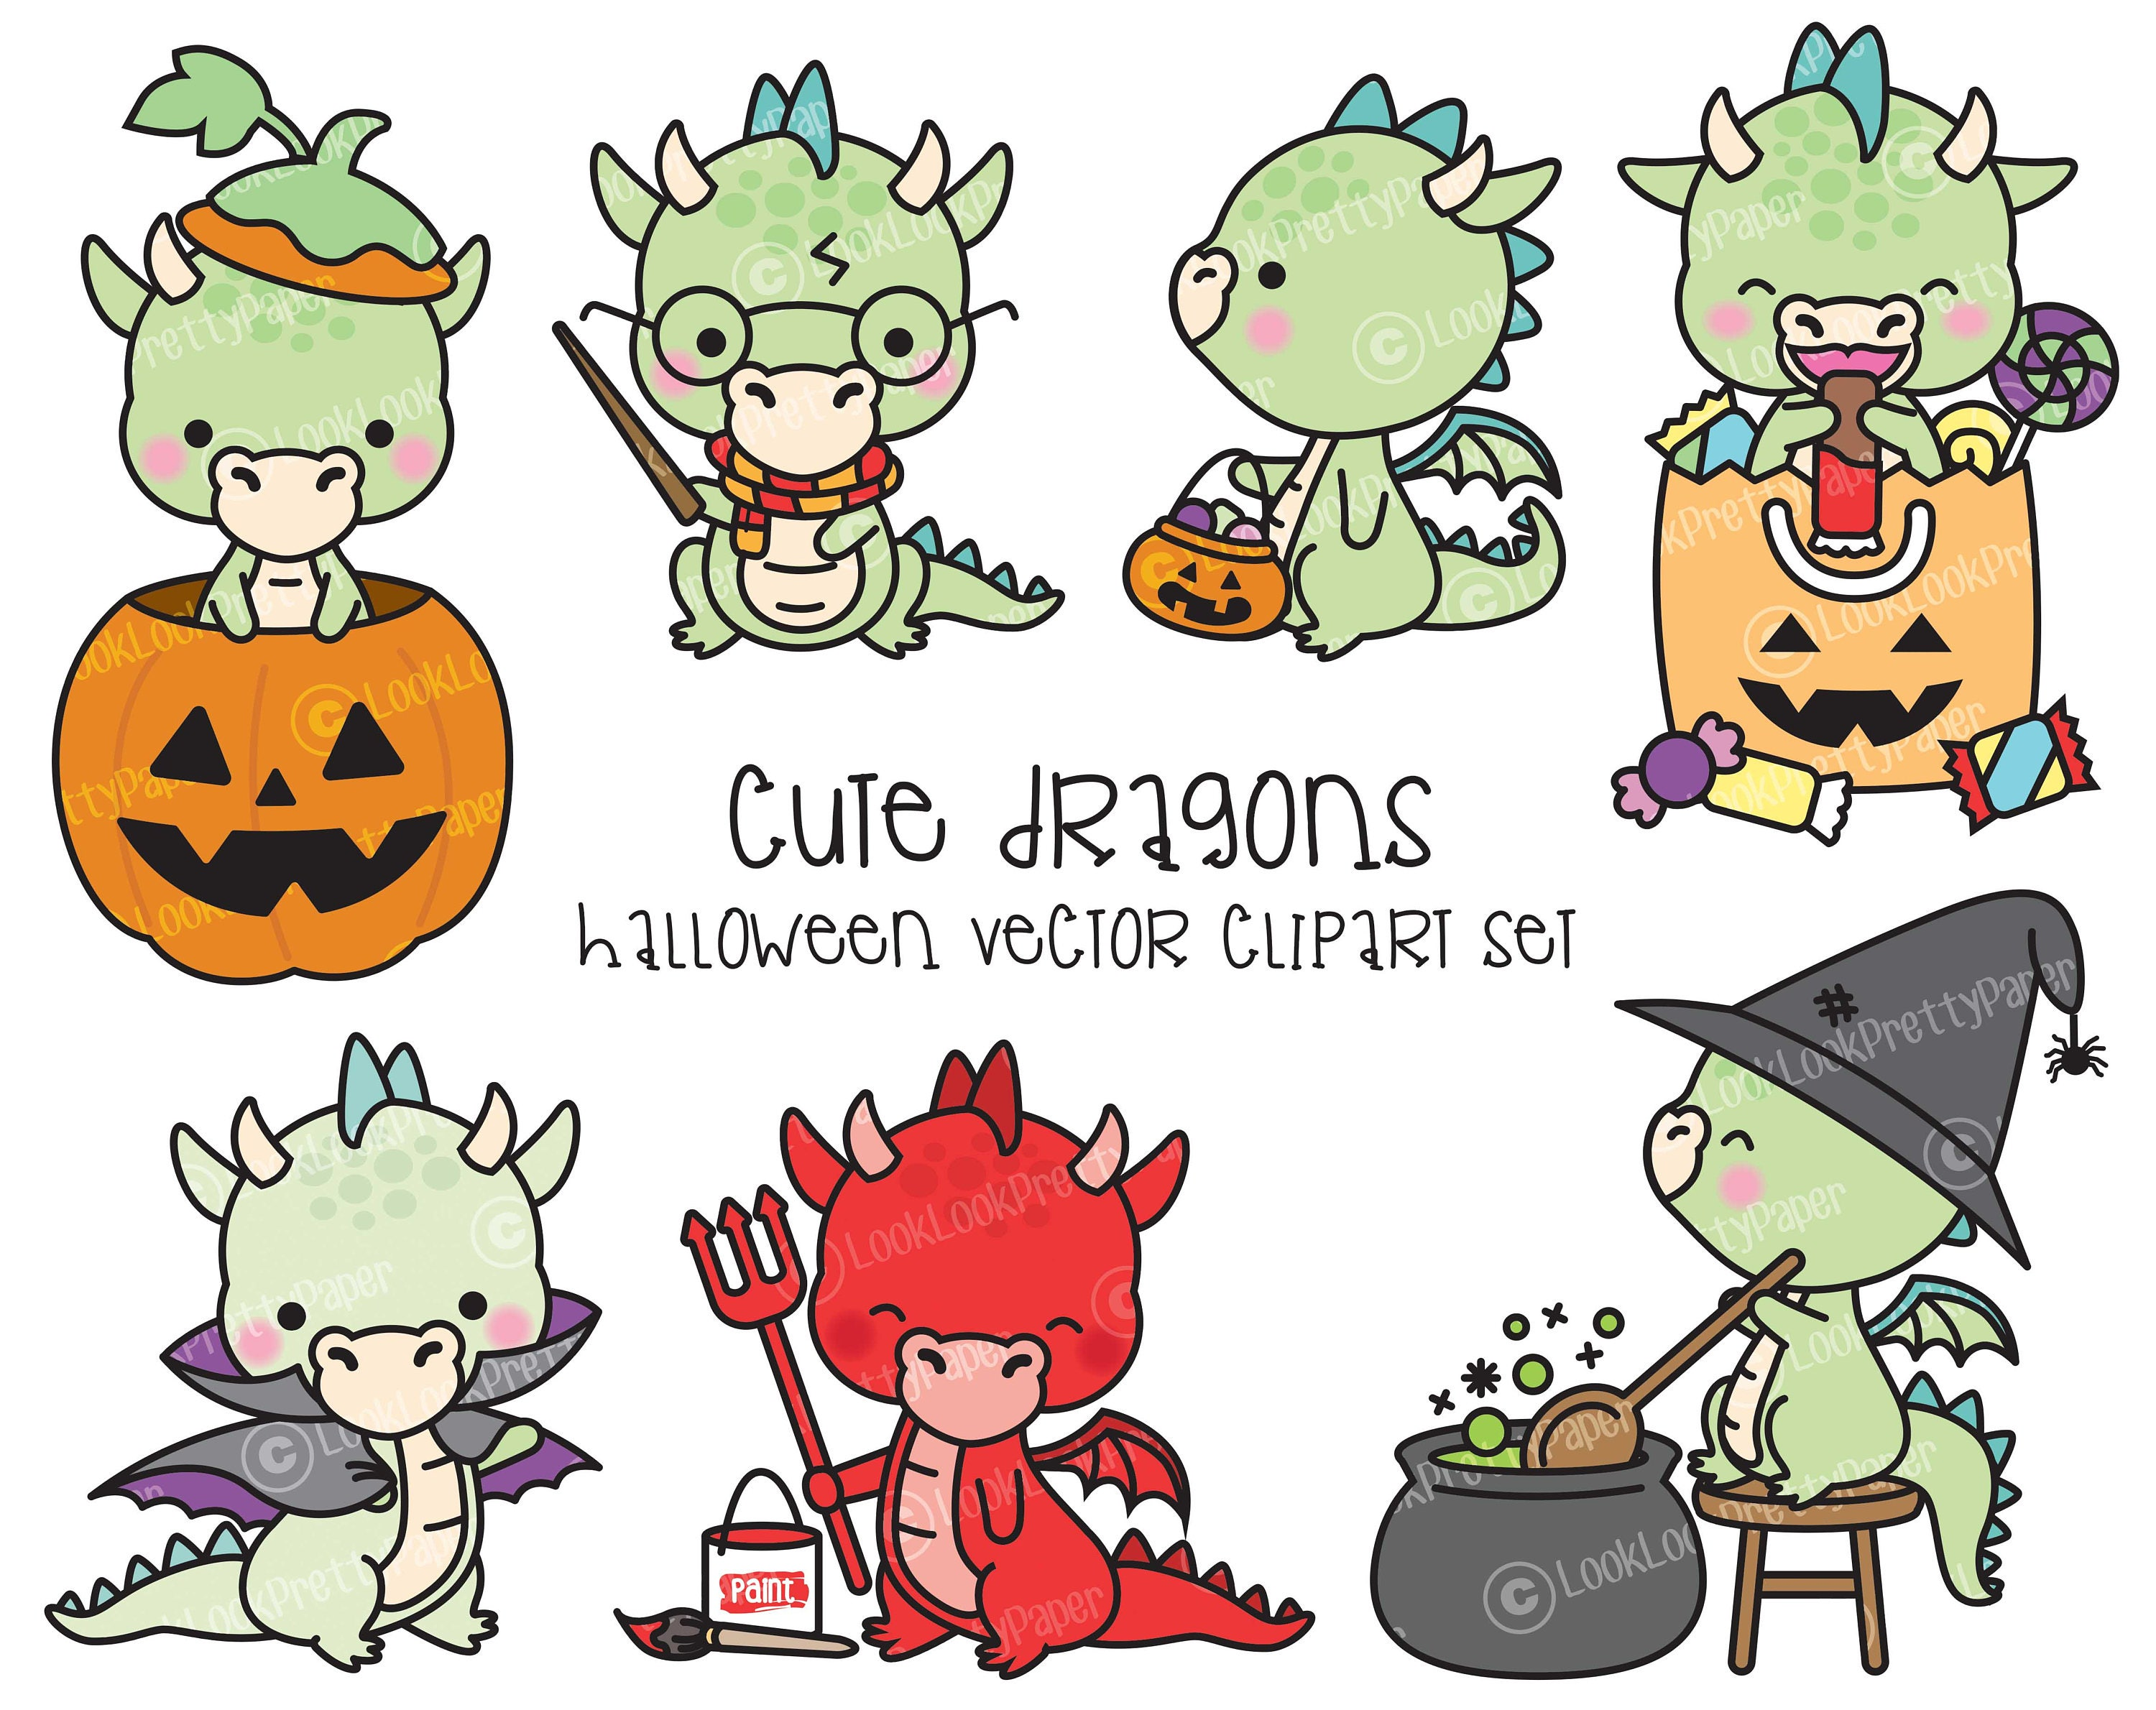 Premium Vector Clipart Kawaii Halloween Dragons Cute